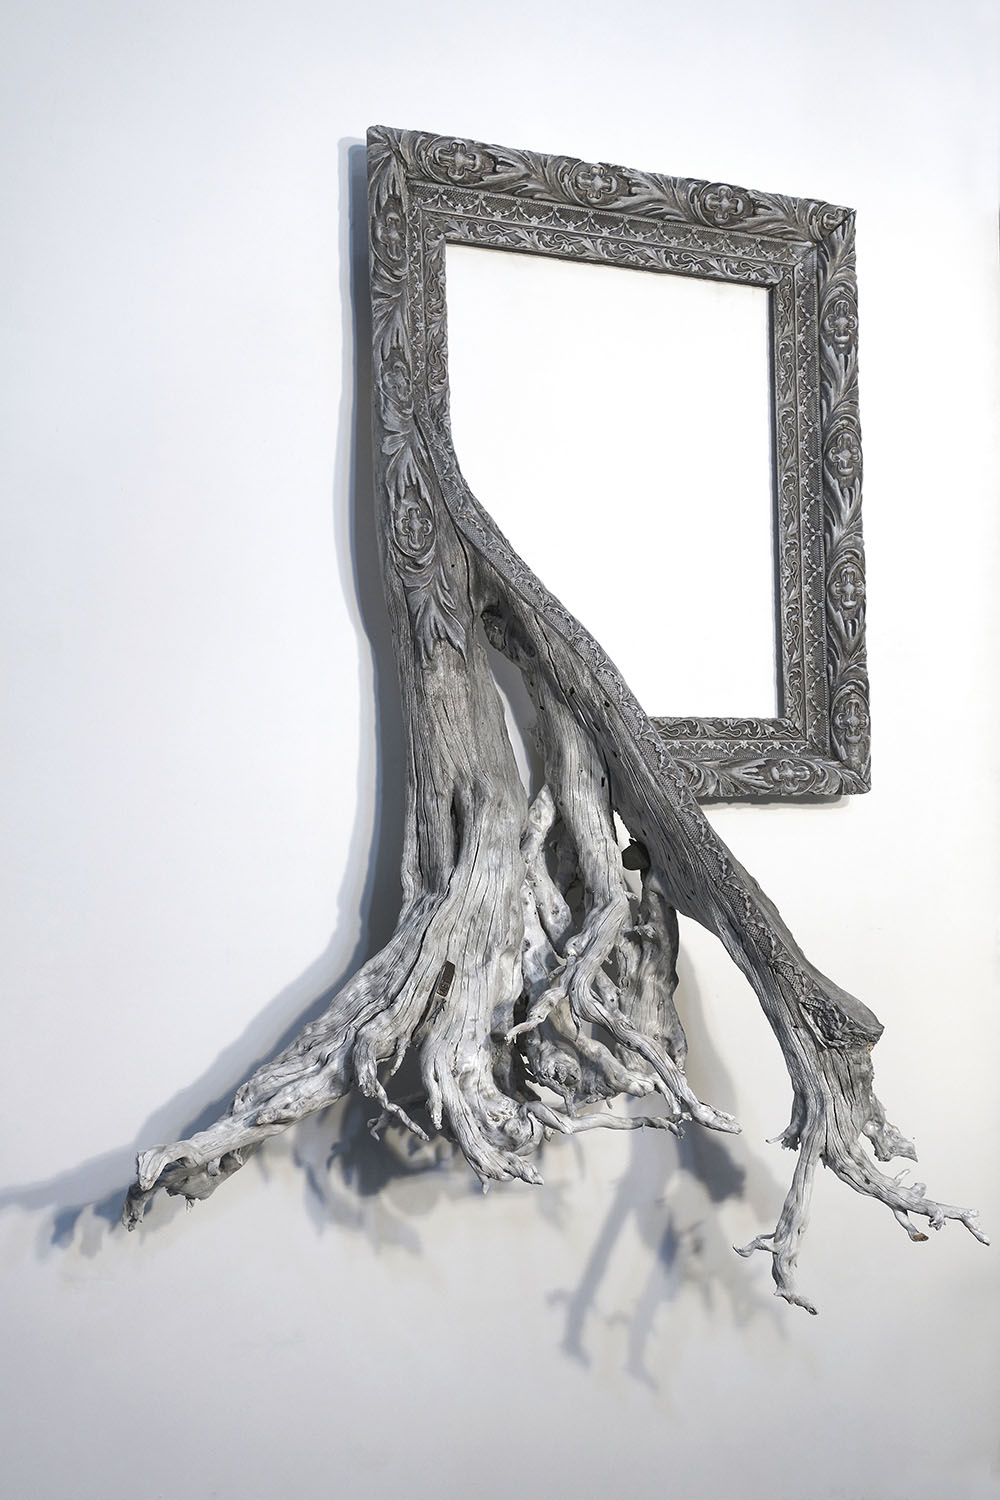 New Fusion Frames by Darryl Cox Fuse Gnarled Tree Roots with Ornate Picture Frames (9 pics)